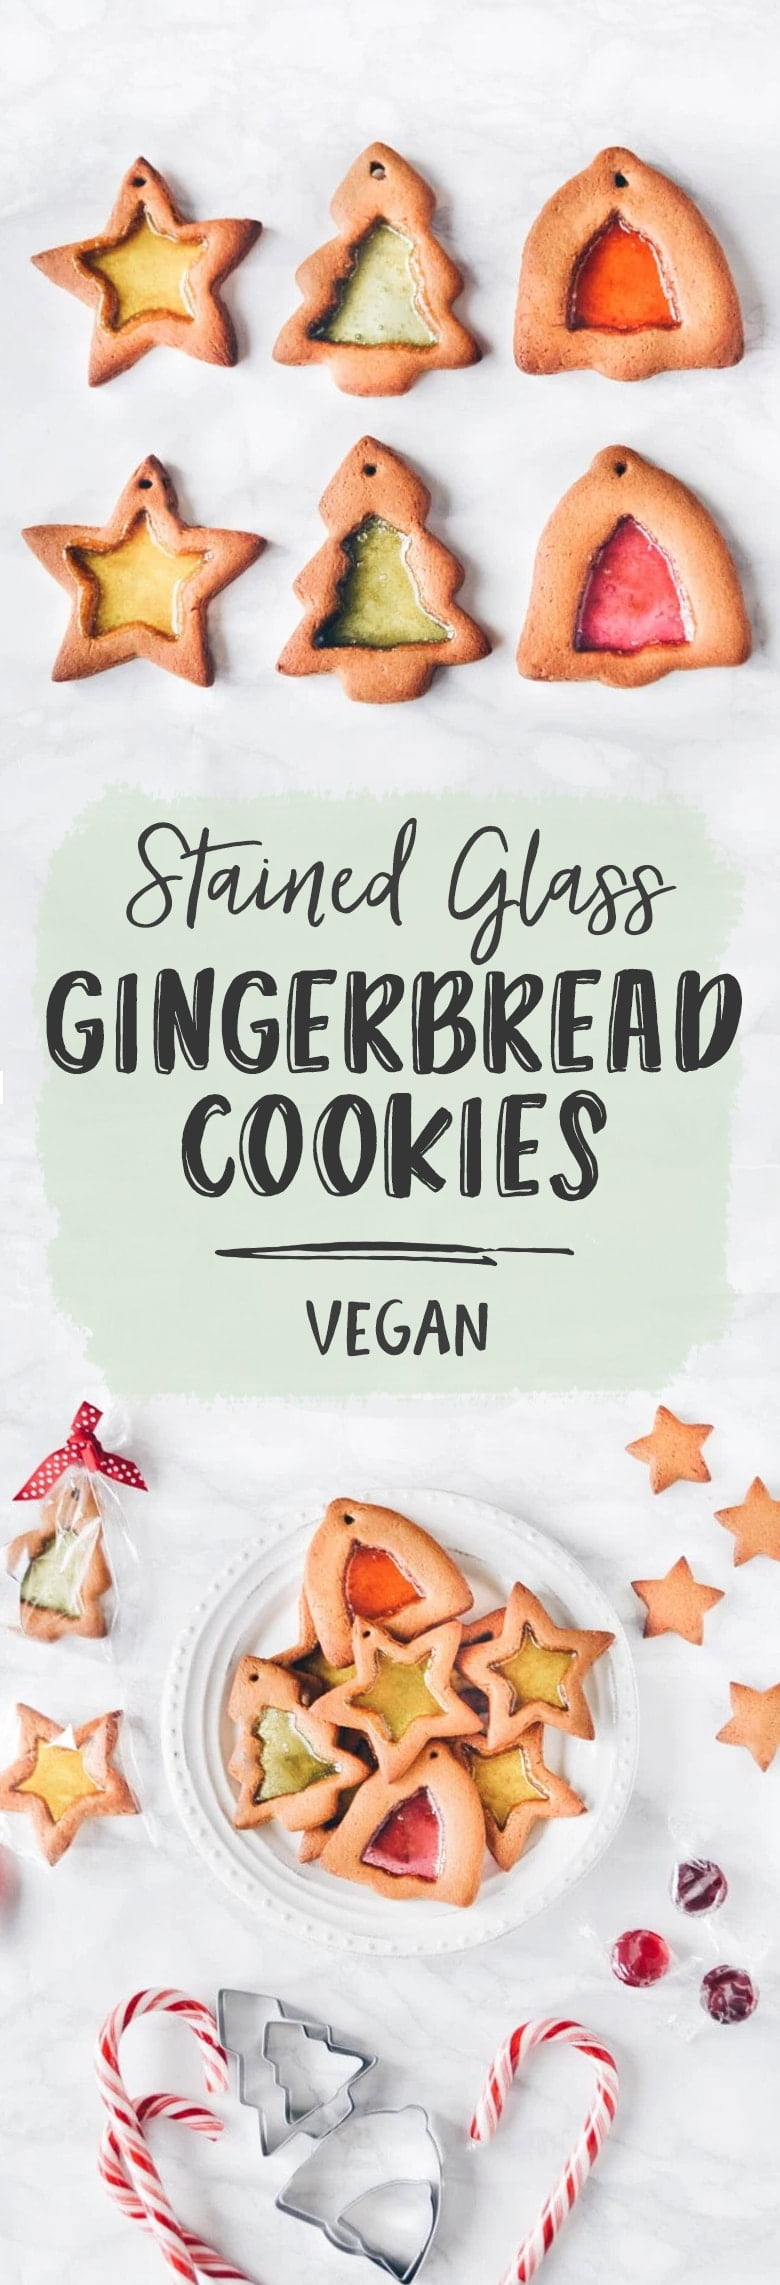 Gingerbread Stained Glass Cookies (Vegan)